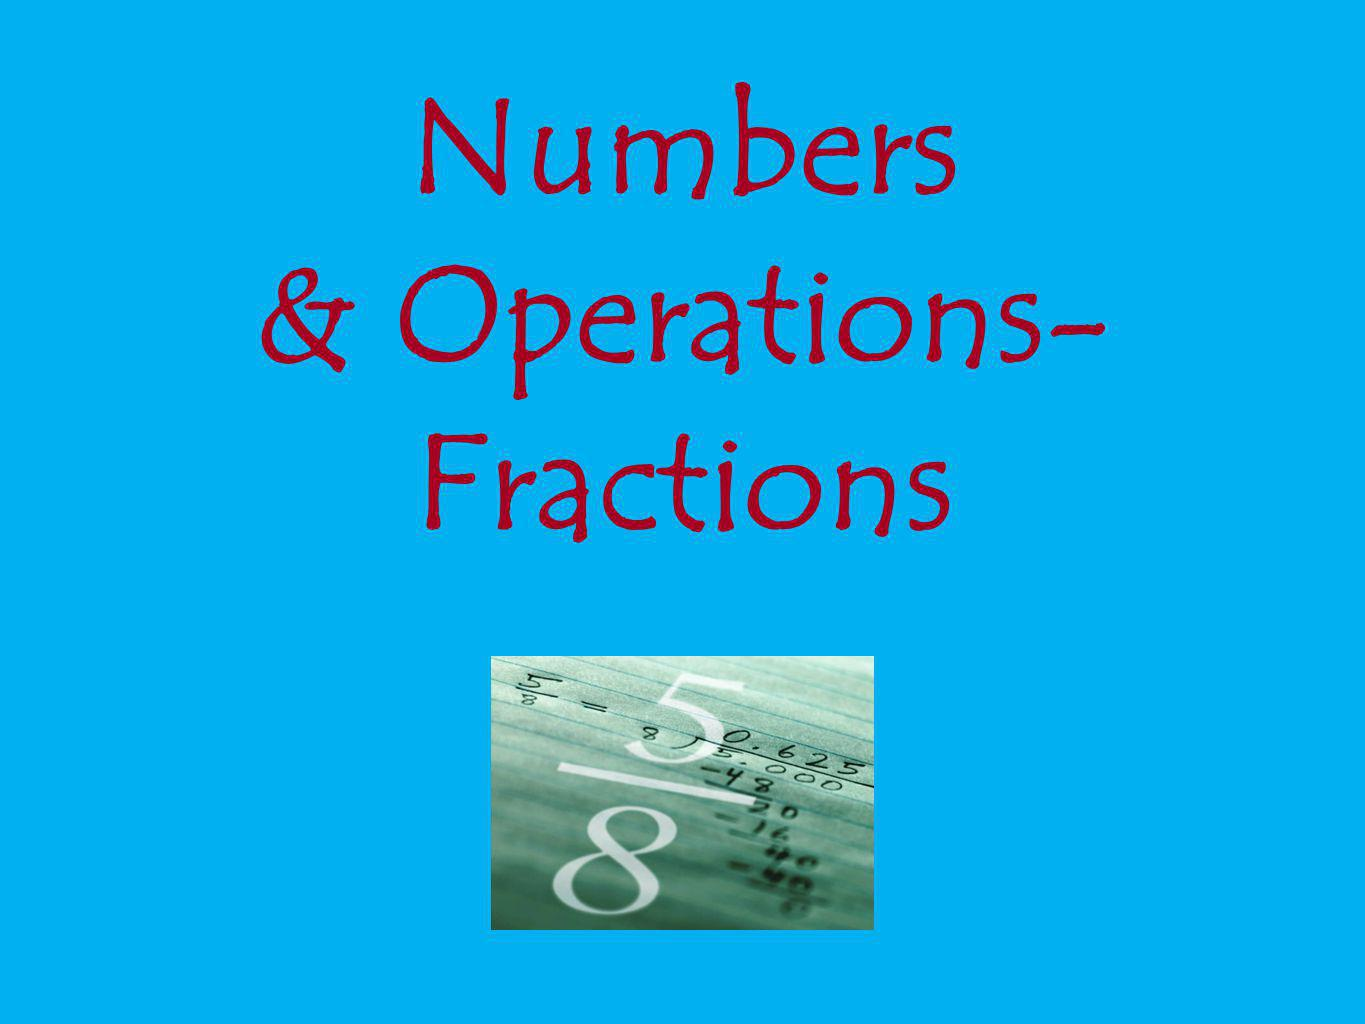 Numbers & Operations- Fractions